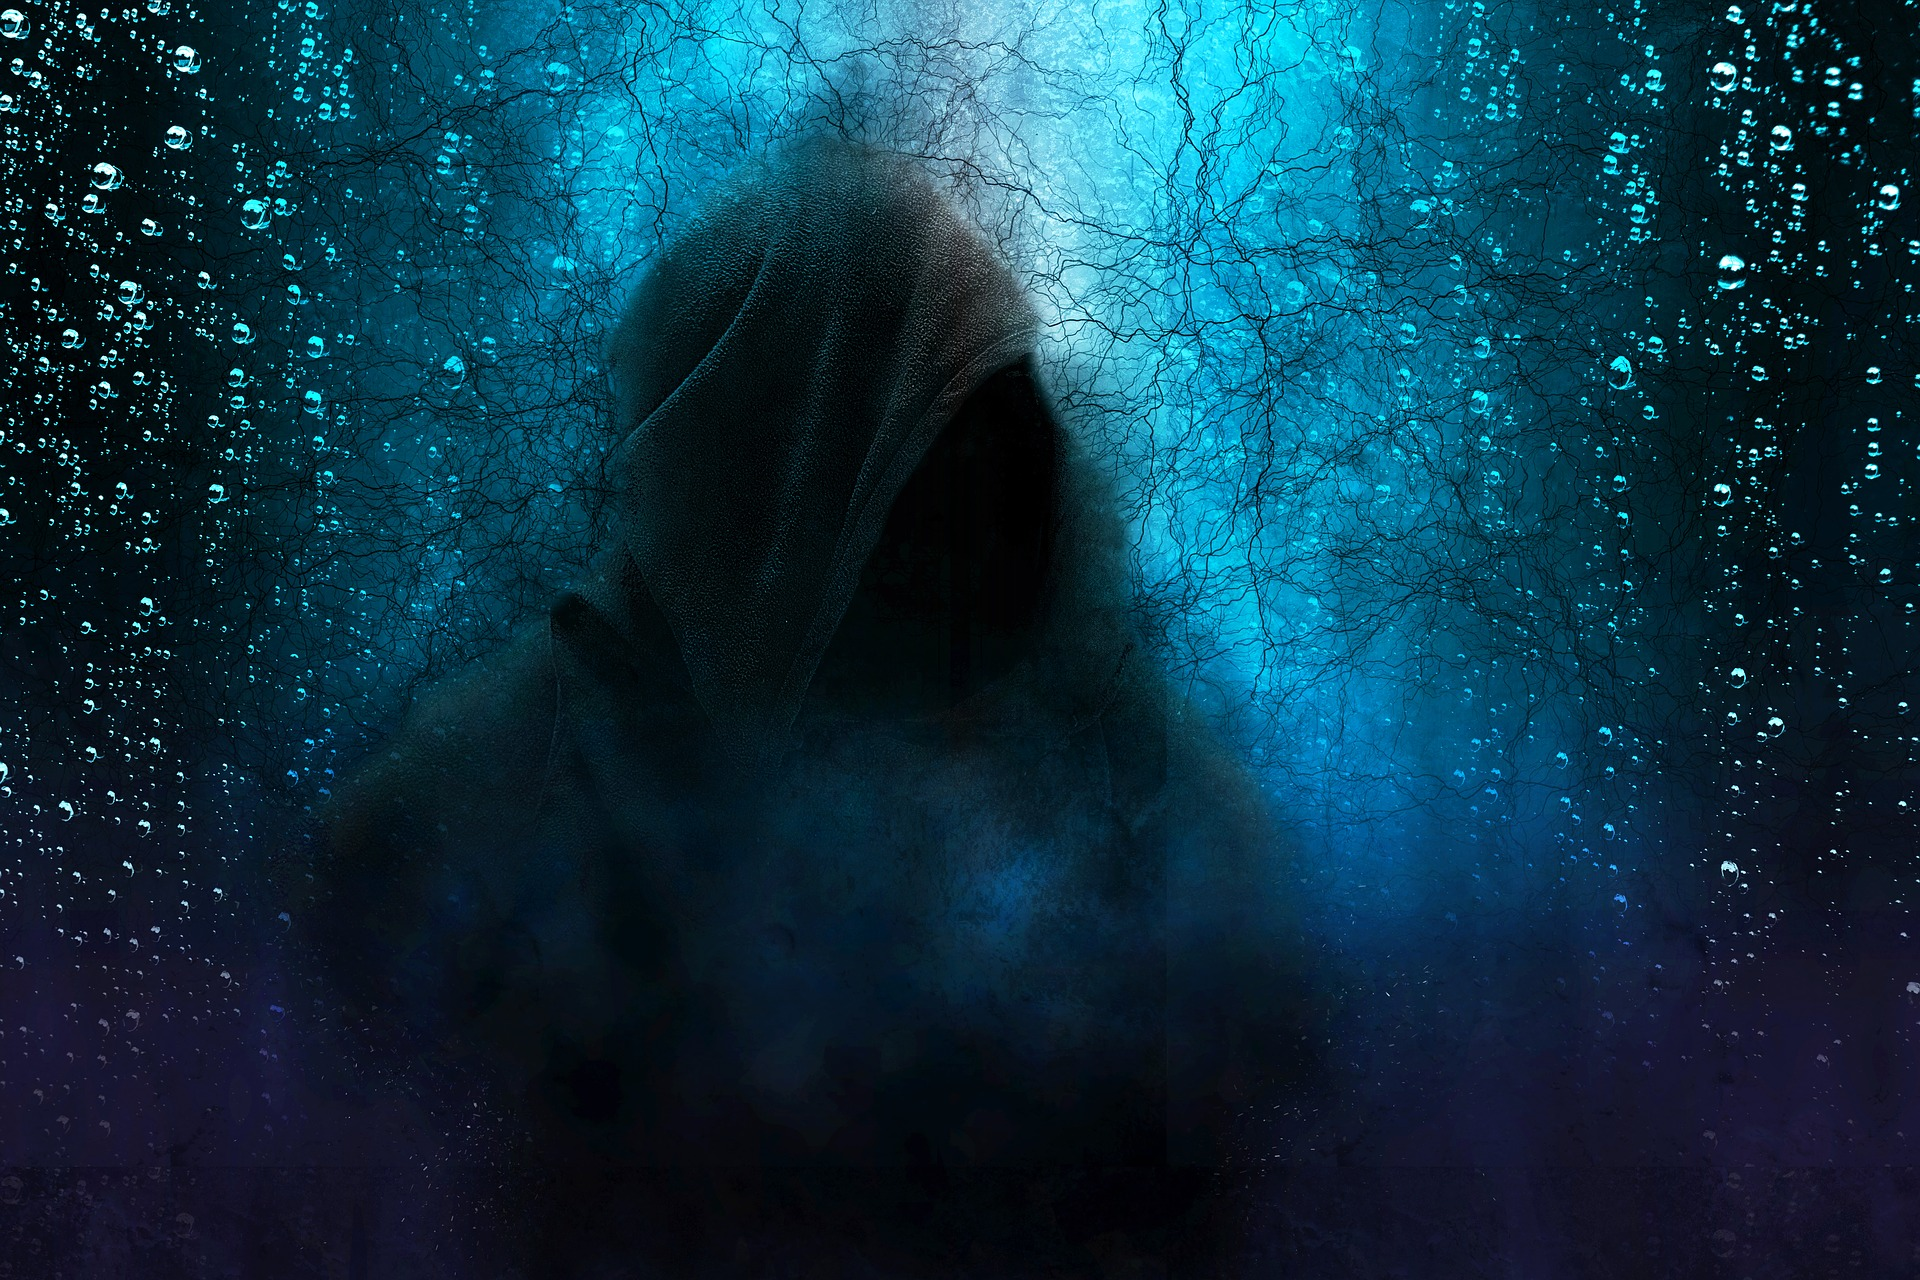 Hooded figure against dark blue background